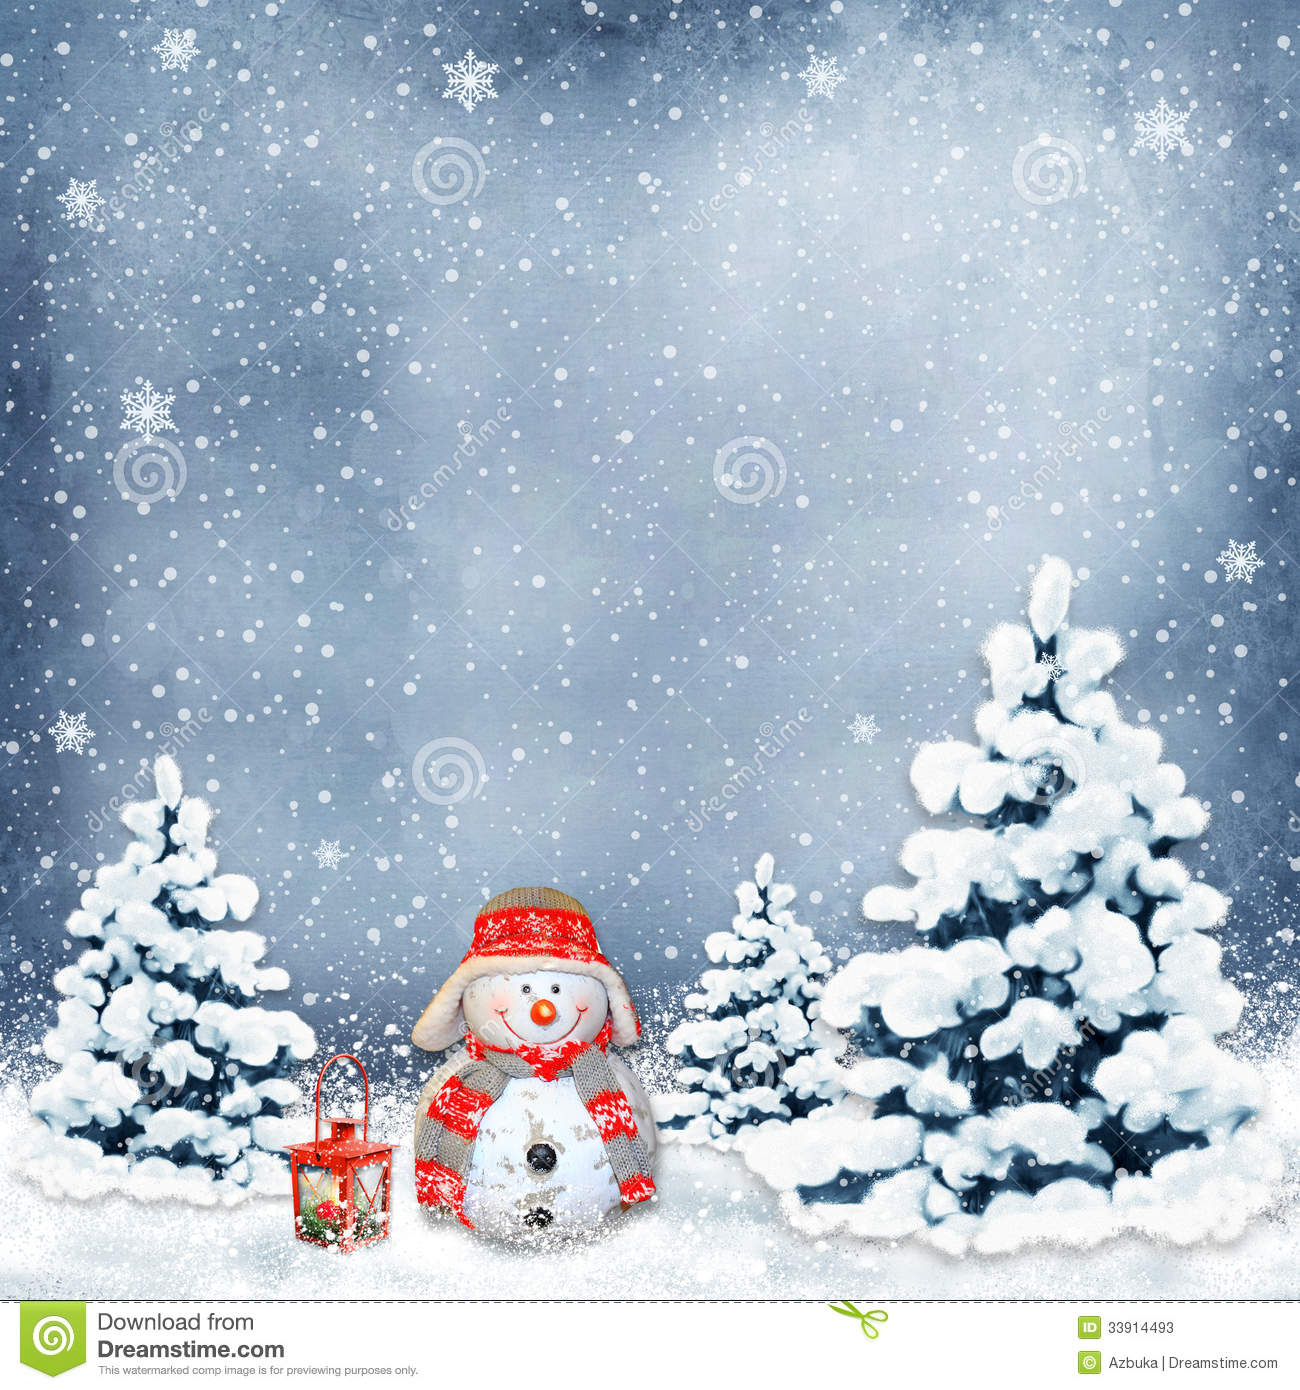 Winter Background With A Snowman And Christmas Trees Stock Photos - Image: 33914493